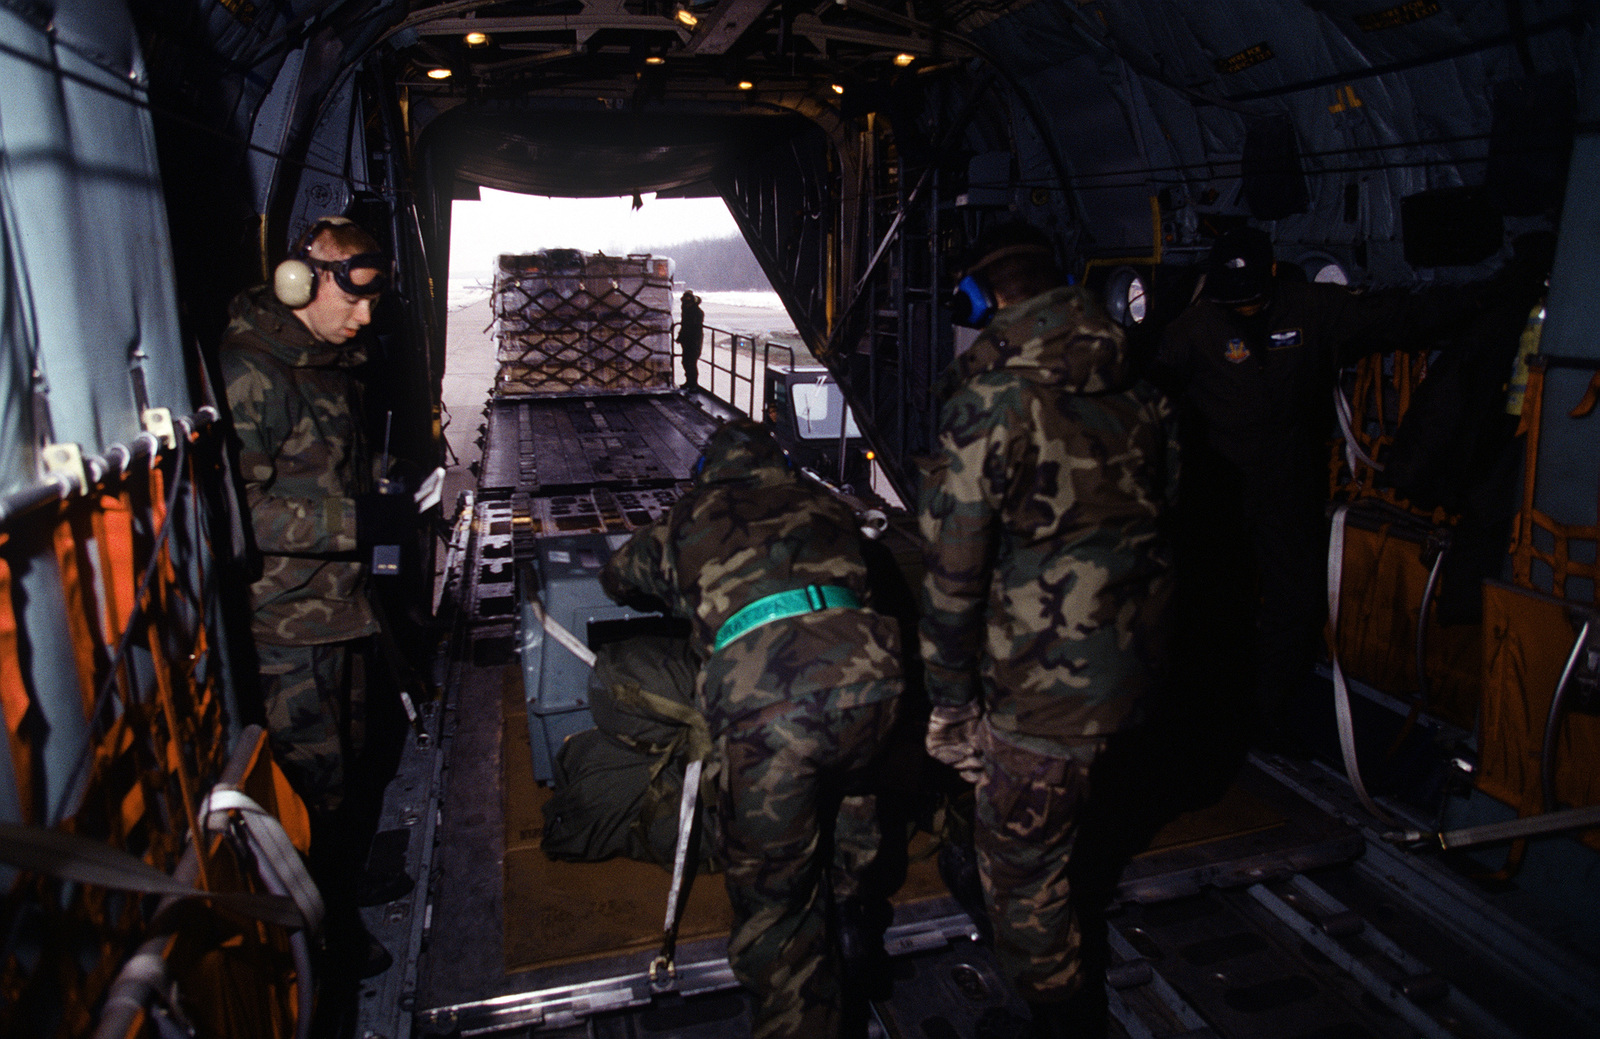 AIRMAN of the Mobility Unit at Tuzla push cargo pallets off the 40th Airlift Squadron (AS), C-130H Hercules aircraft after it's arrival at the former Yugoslavian air base. The 40th AS is assigned to the 7th Wing, Dyess Air Force Base, Texas and is deployed to Ramstein for a 45 day Temporary Duty (TDY) tour to support Operations Joint Endeavor